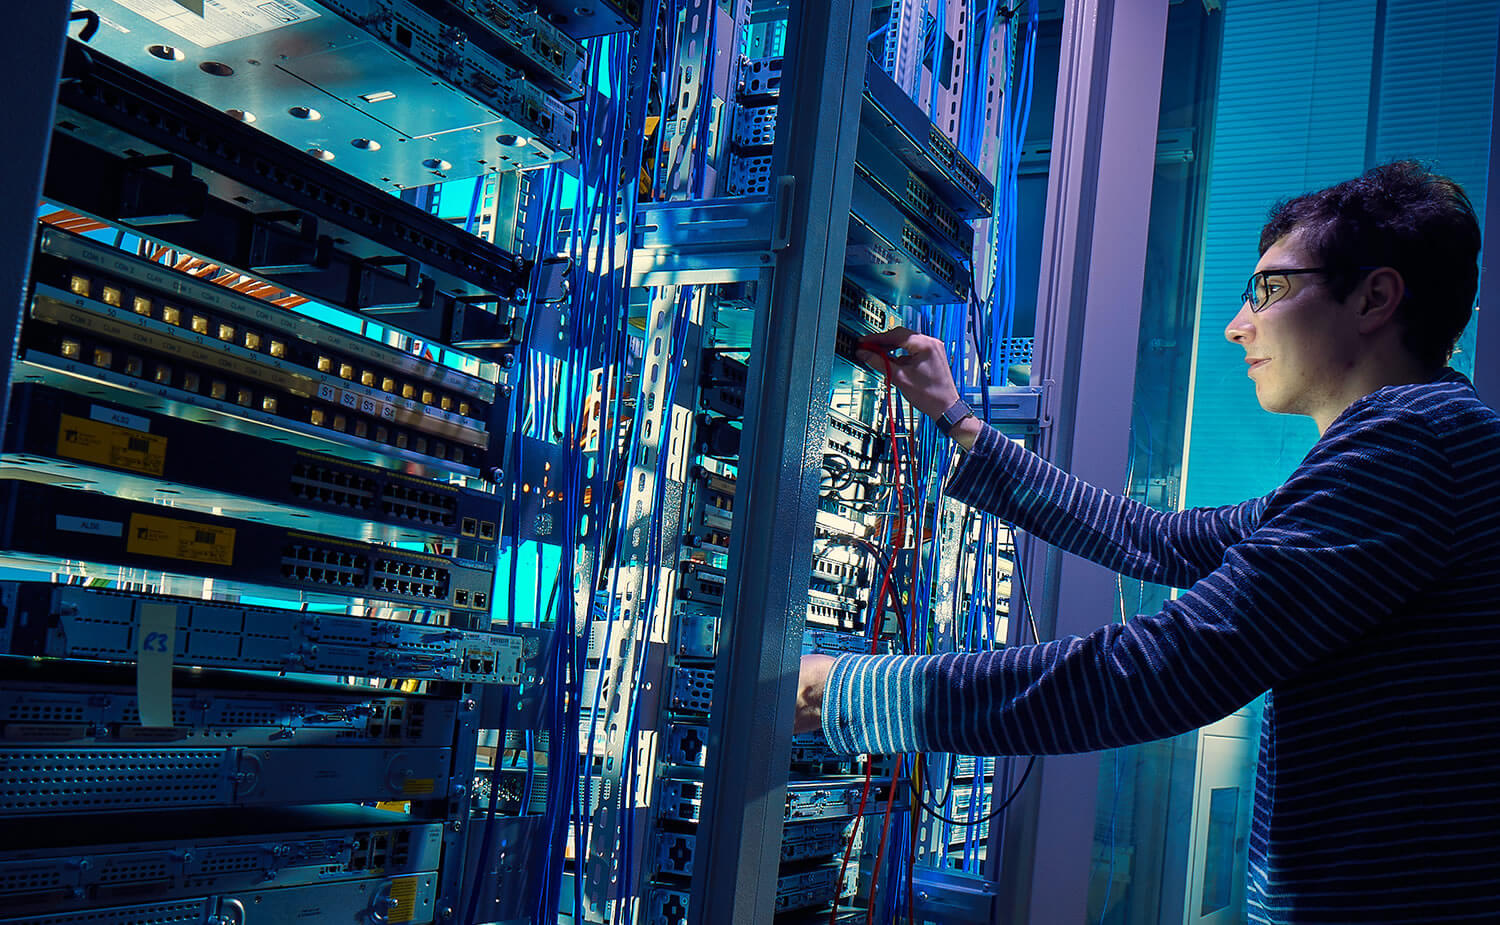 Get the Ultimate Cisco Certification bundle, currently 98% off with lifetime access